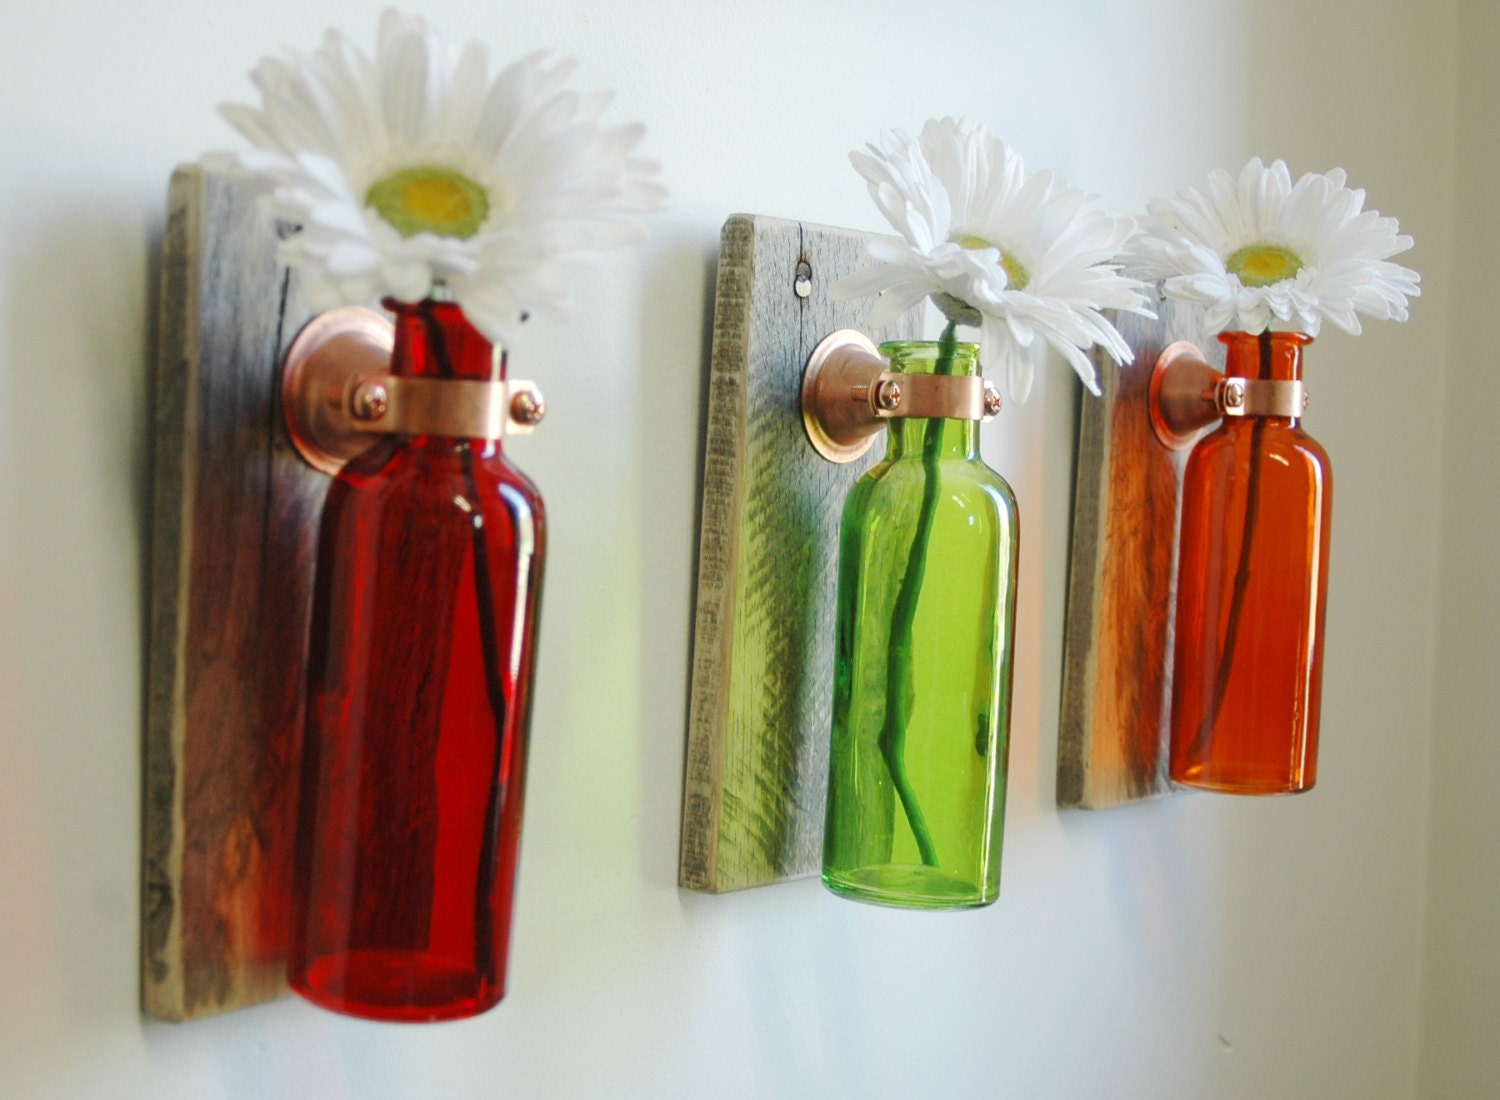 Quarto Rustico ~ Fruit Punch Collection of Colored Bottles each mounted on